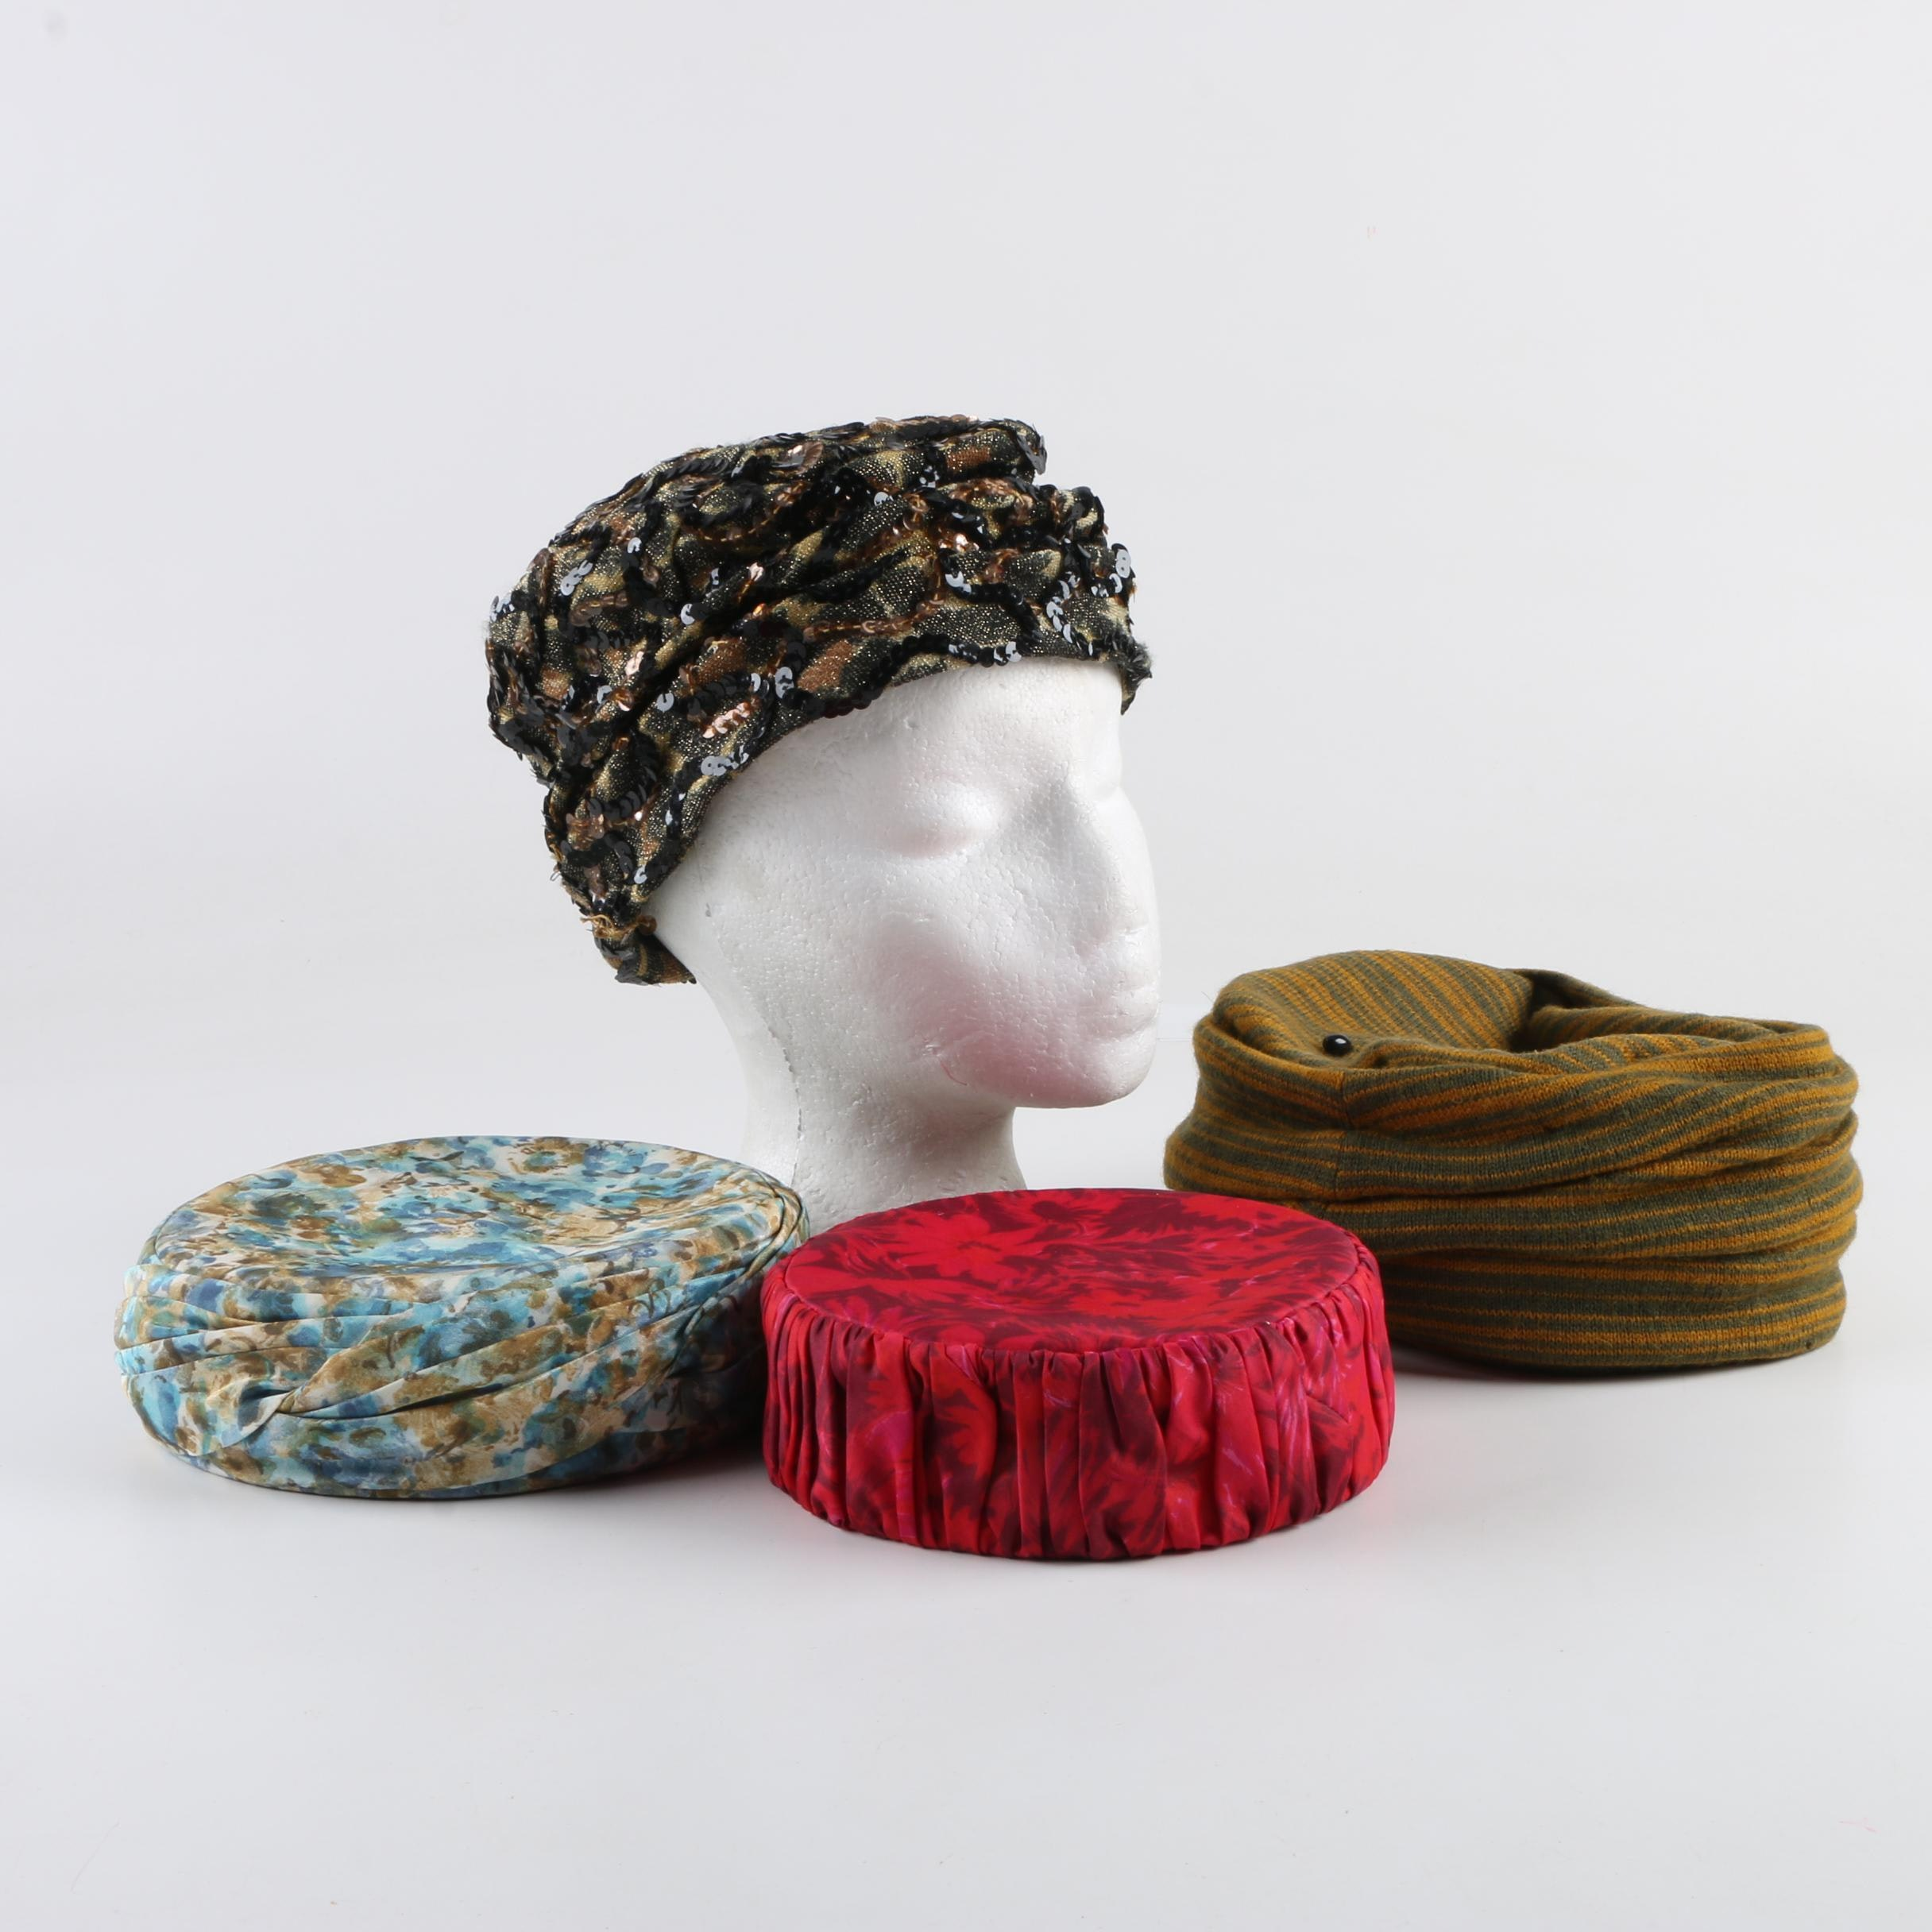 Women's Vintage Pillbox Hats Including Lottie Burleson and Neiman Marcus